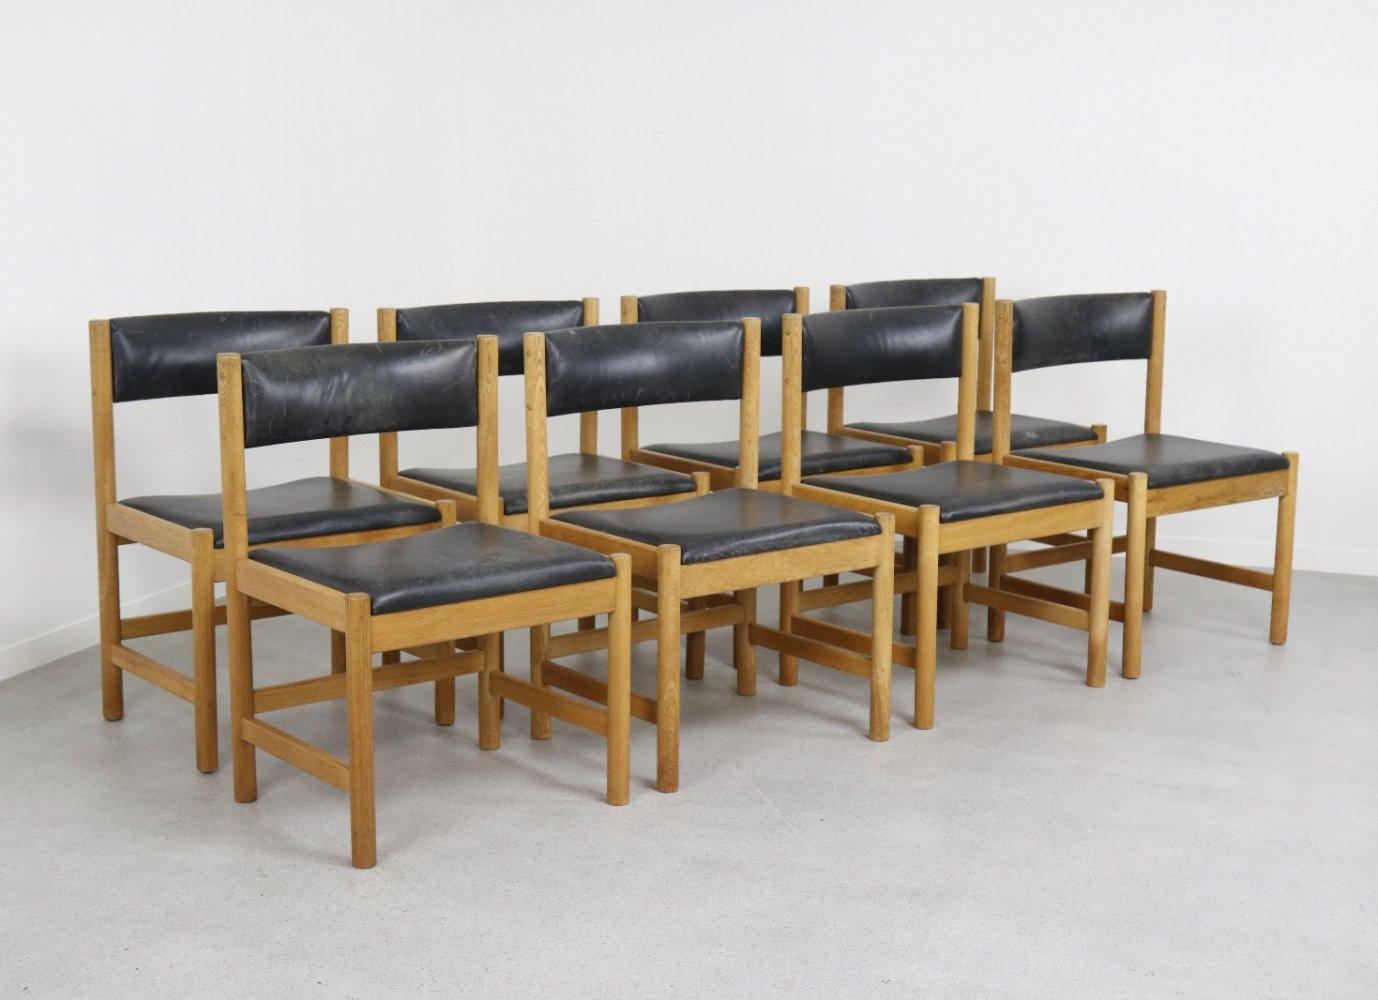 Set of 8 dining chairs in oak & original leather by Børge Mogensen, 1960s